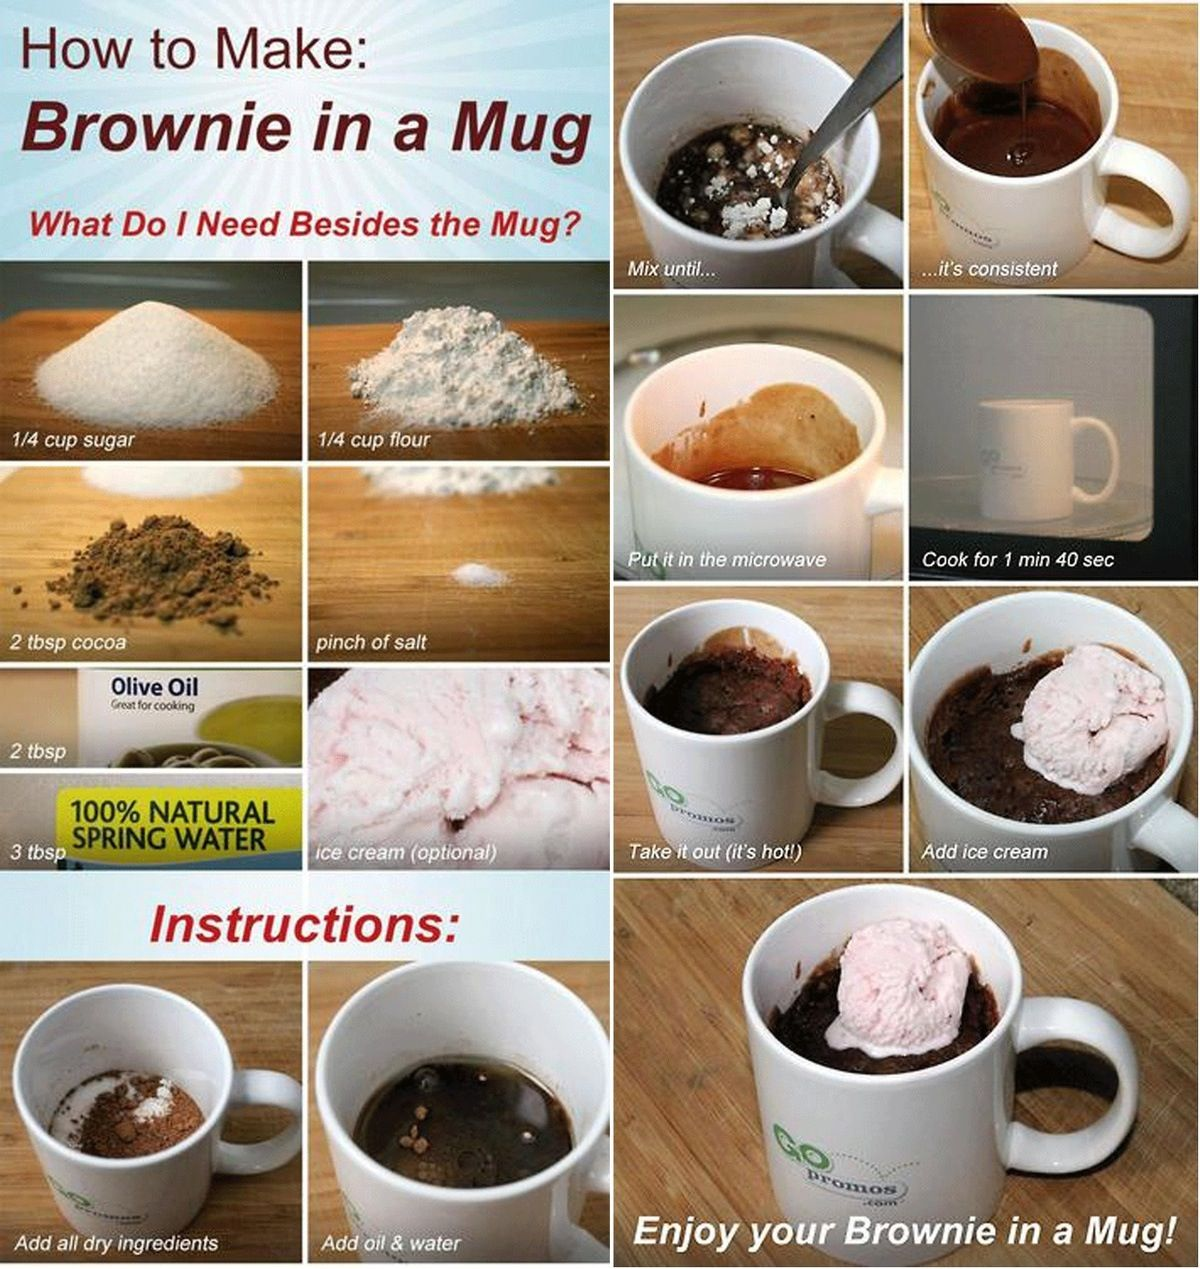 Just tested it!!! It s amazing^^ it really worked:) great quick desert P.S if you want to be a smarty pants like i did, and leave it more in the microvave (for the flour to cook better), then DON'T:)) Otherwise you ll get a black-close-to-ash brownie